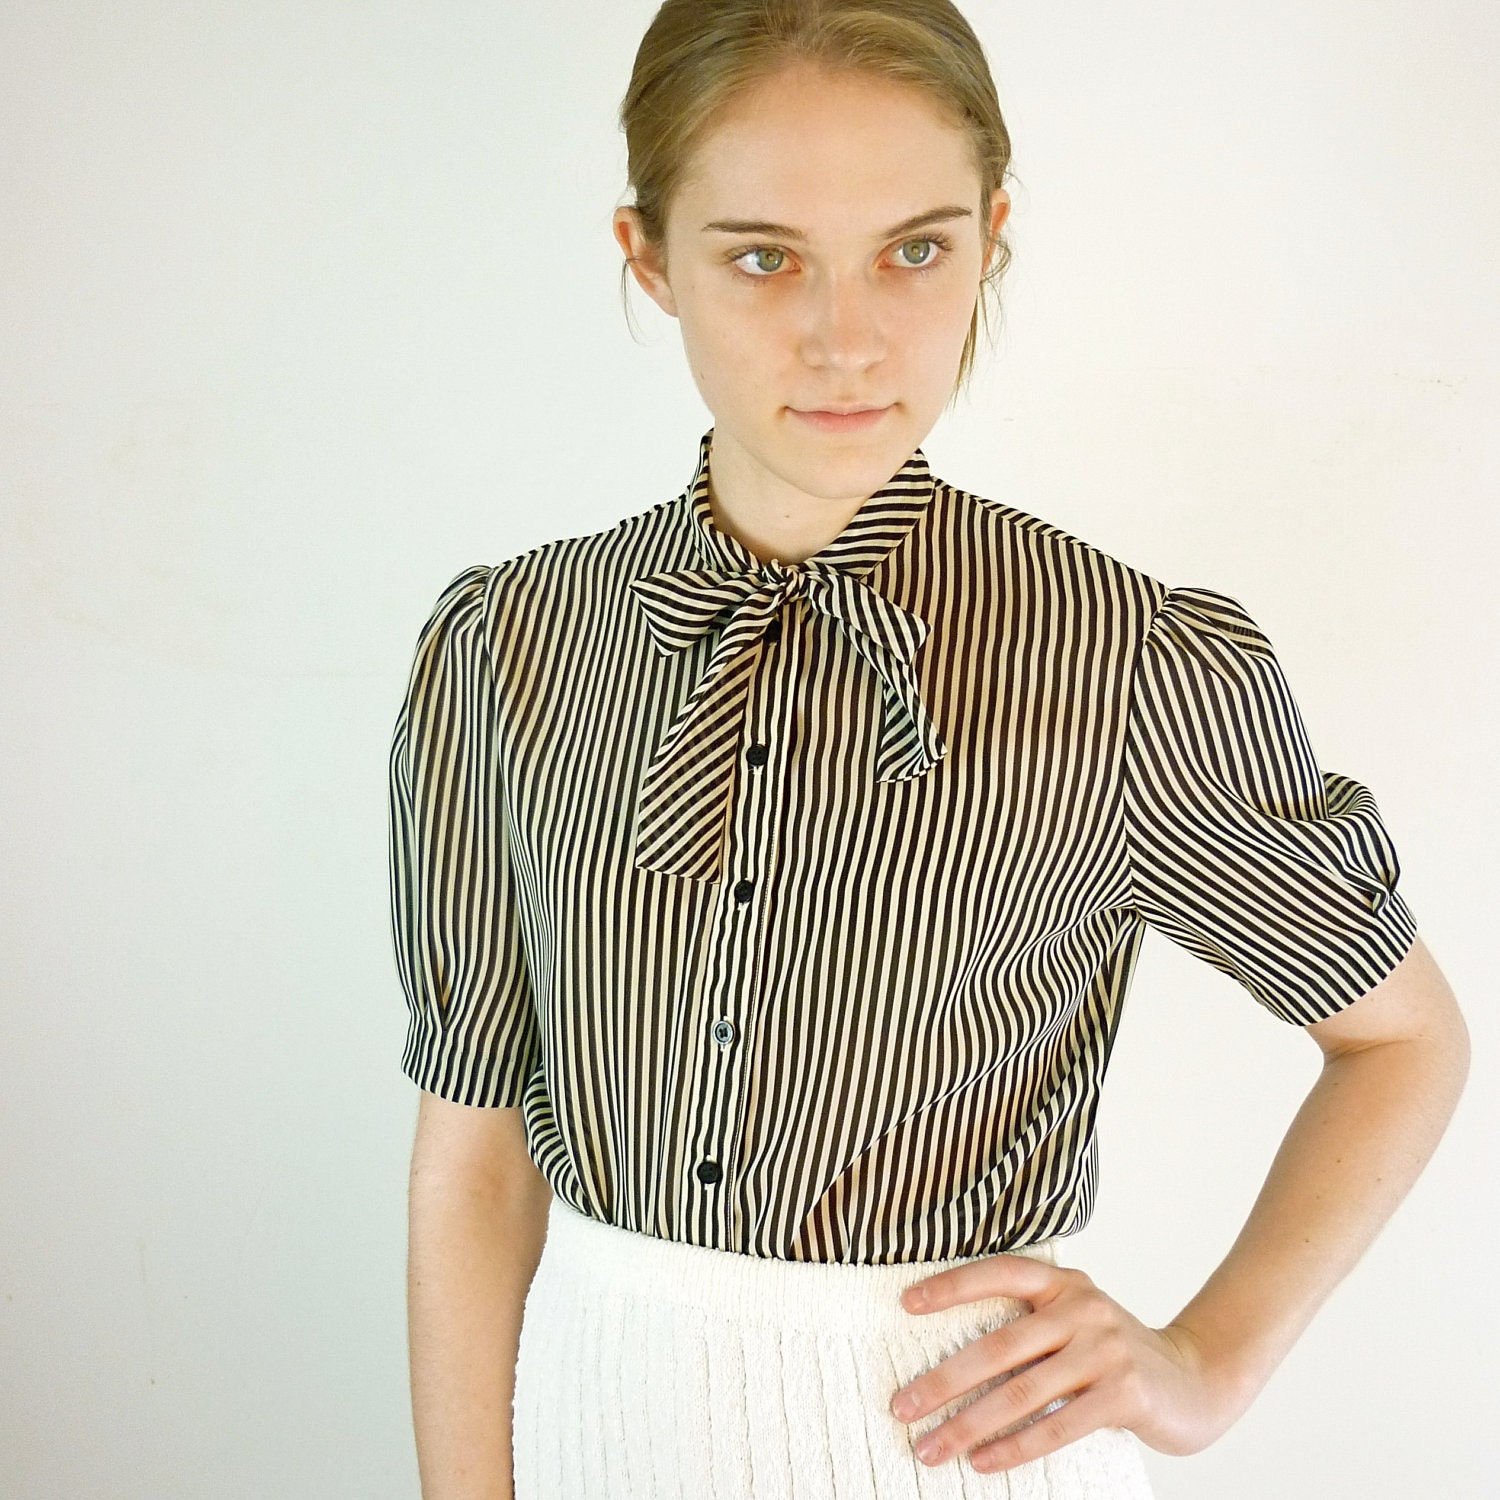 Crocreview Matching Blouses 99